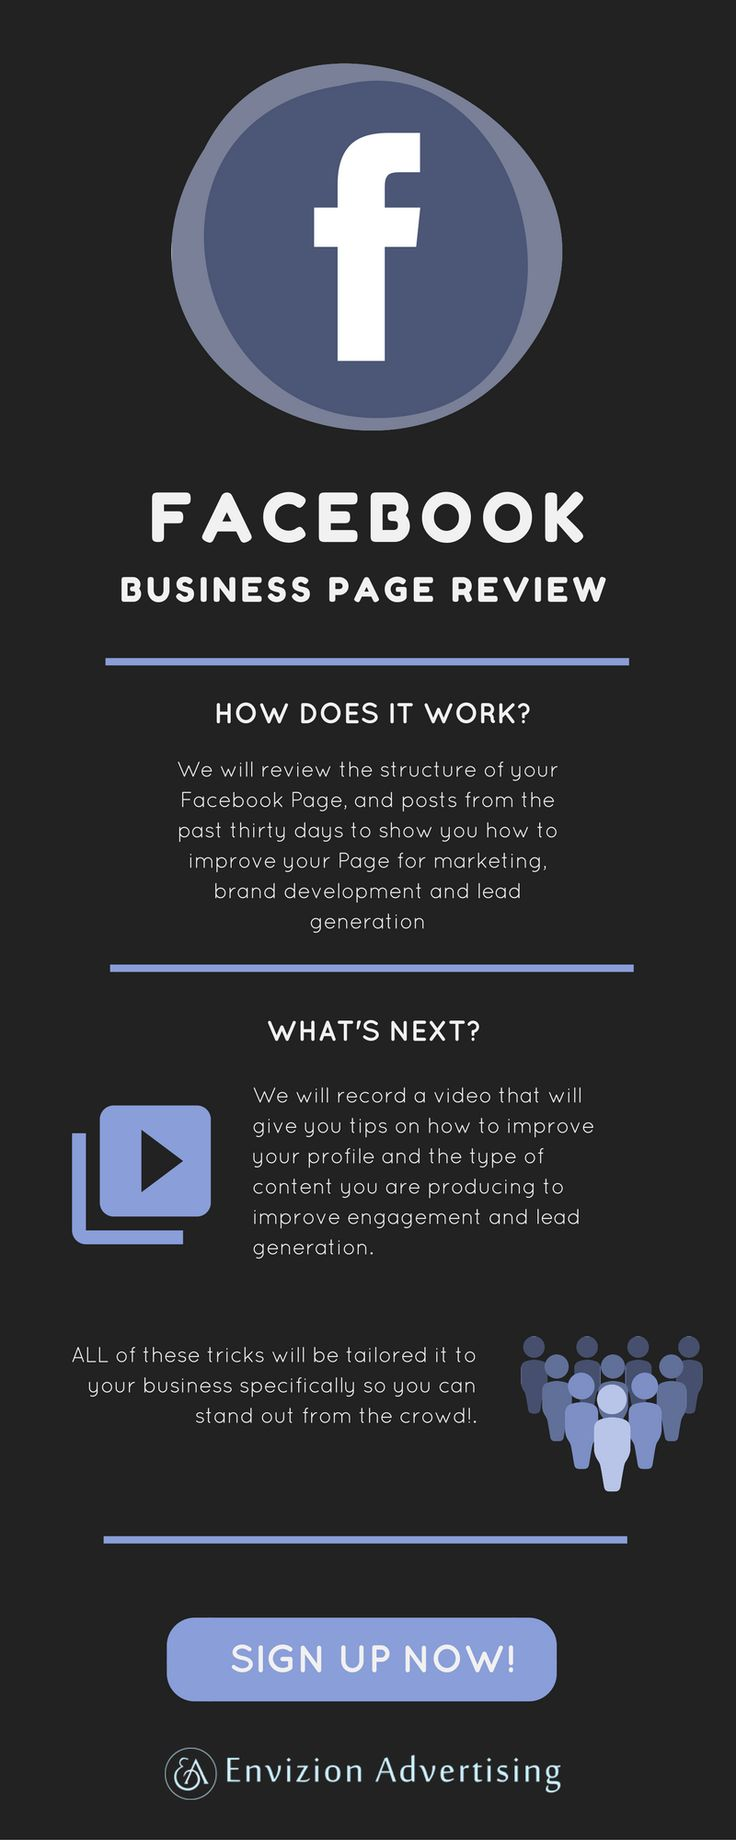 Do you want your Facebook working in your business favor? We will review the structure of your Facebook Page, and posts from the past thirty days to show you how to improve your Page for marketing, brand development and lead generation. Review my facebook: https://envizionadvertising.com/product/facebook-business-page-review/